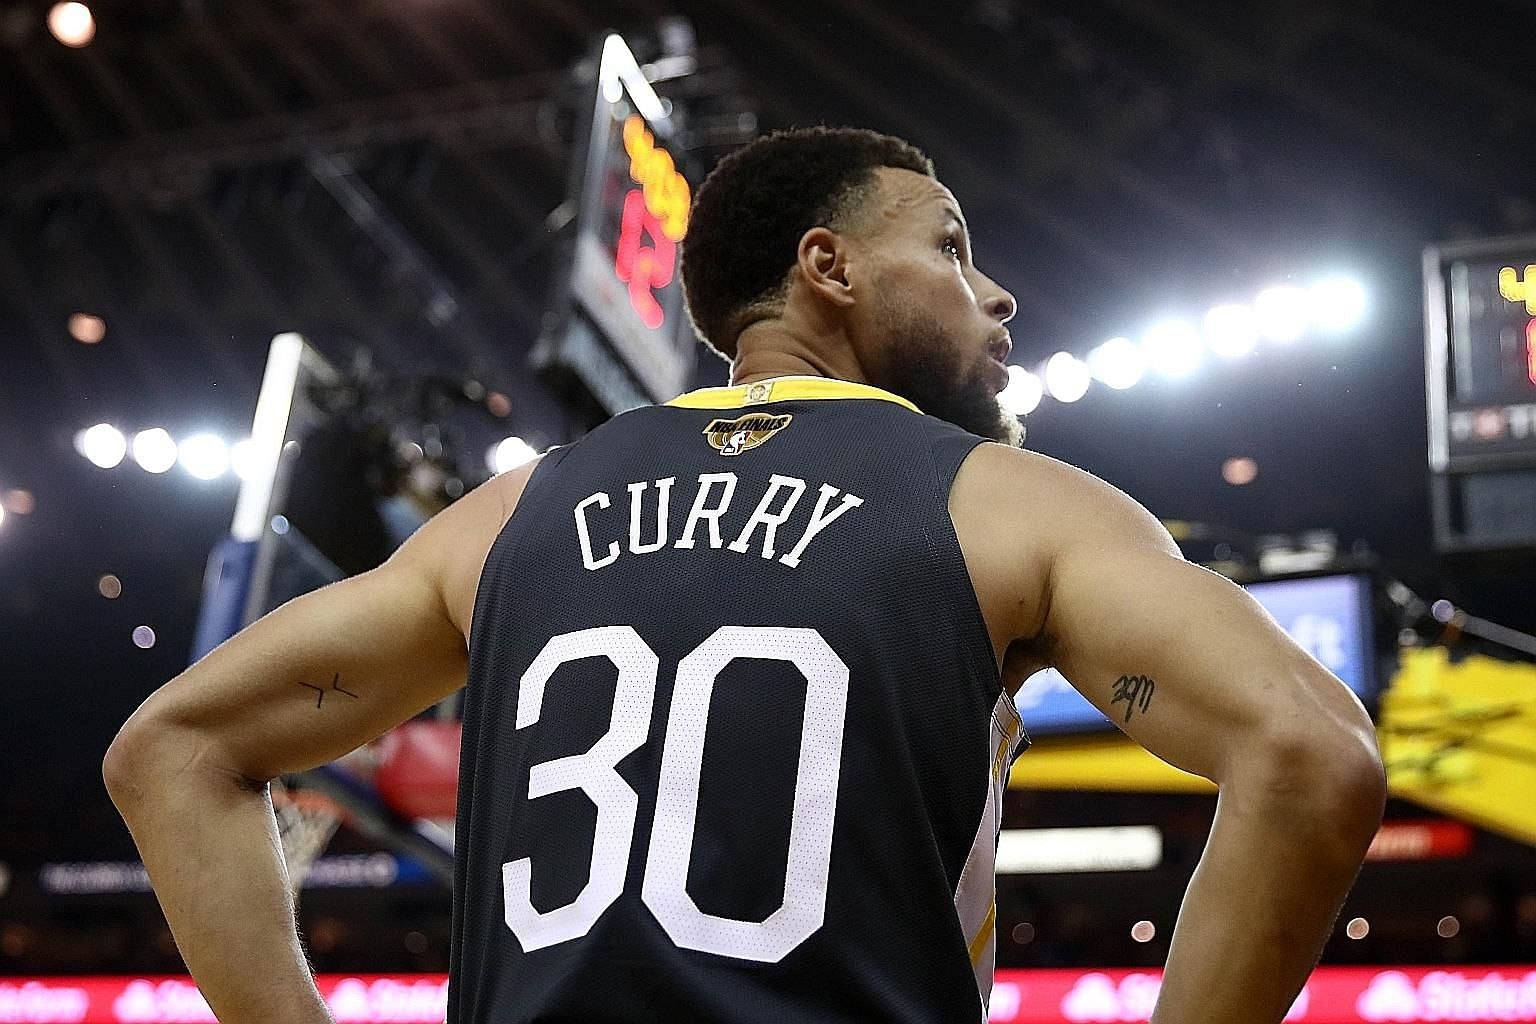 Stephen Curry and his Warriors have lost touch with their working-class fan base in their rush to become a big-money side. PHOTO: AGENCE FRANCE-PRESSE